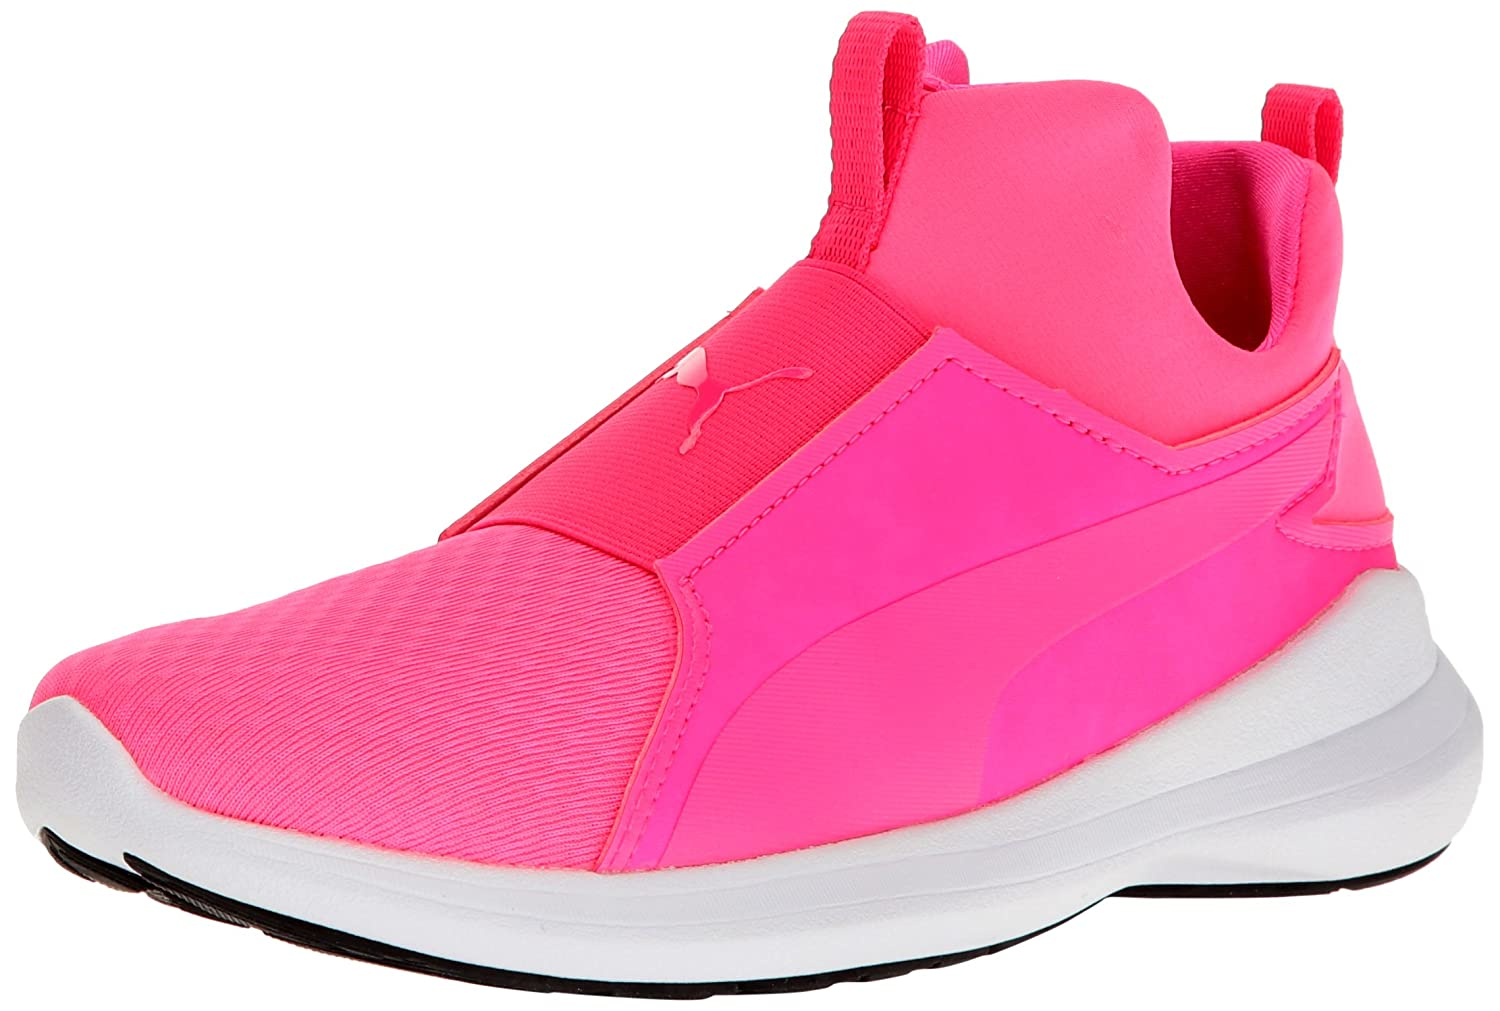 PUMA Women's Rebel Mid WNS Sneaker B01M4LCAWG 7 M US|Knockout Pink-knockout Pink-puma White